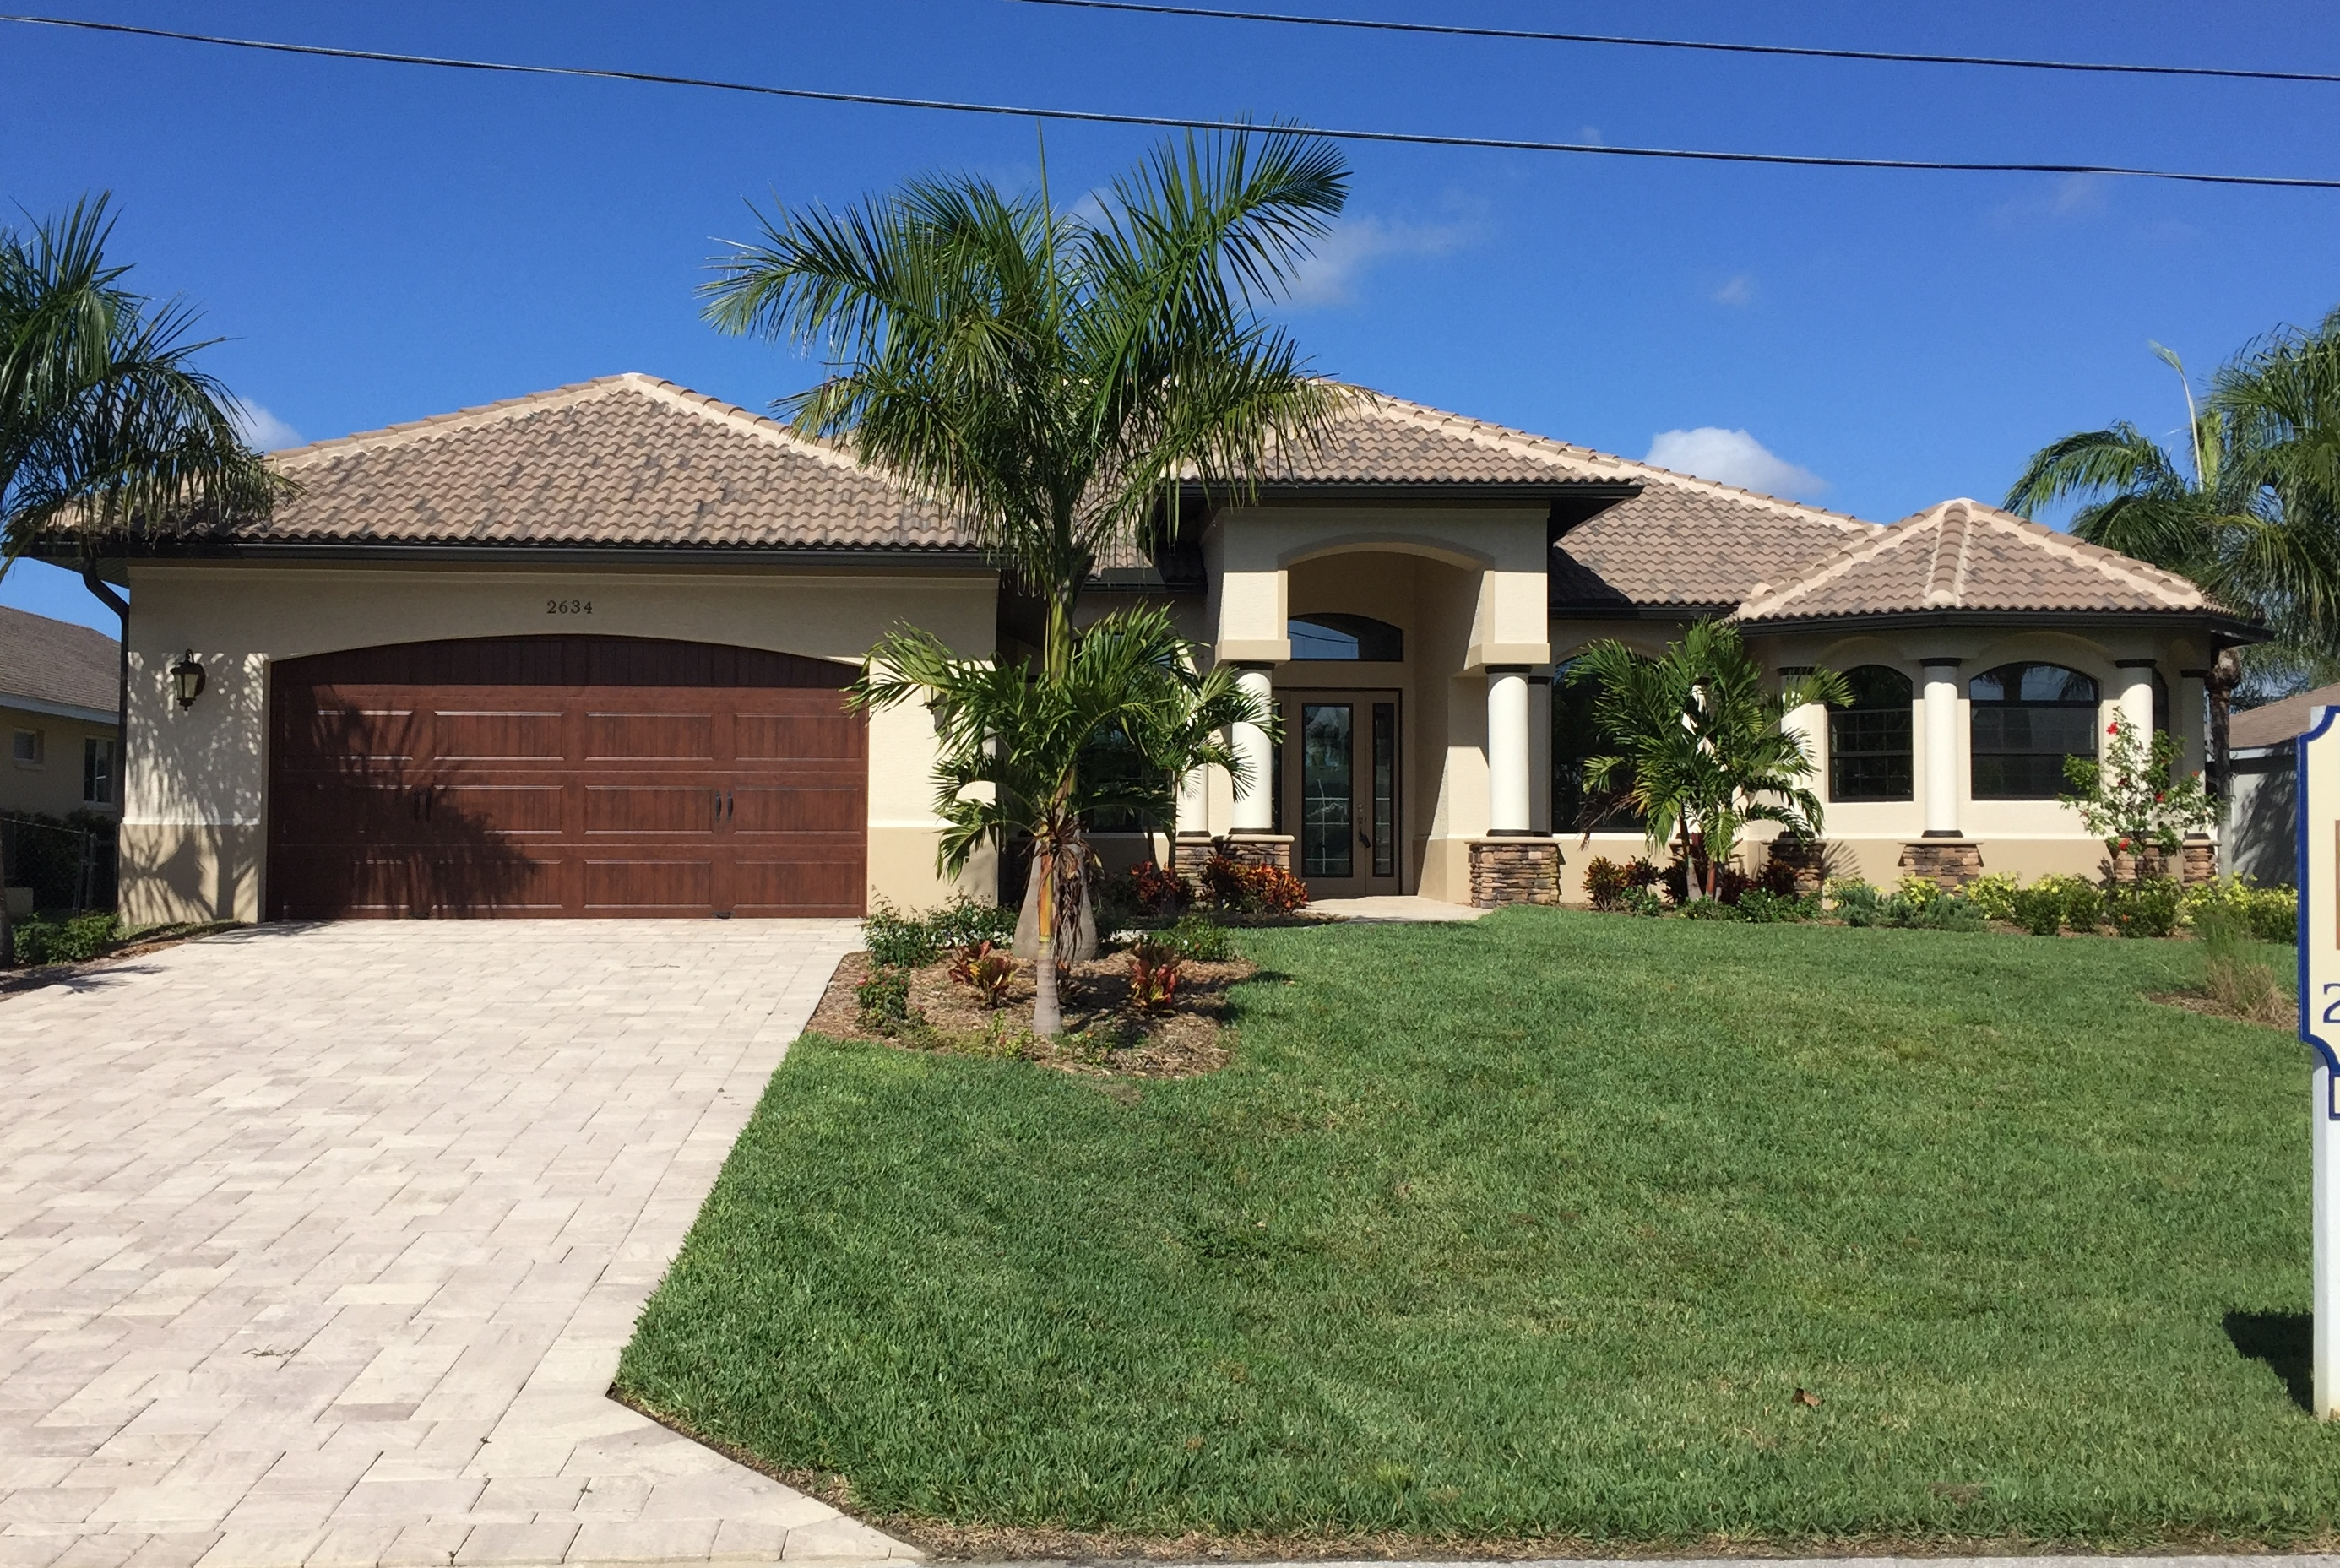 New homes for sale in cape coral fl for Sunbelt homes